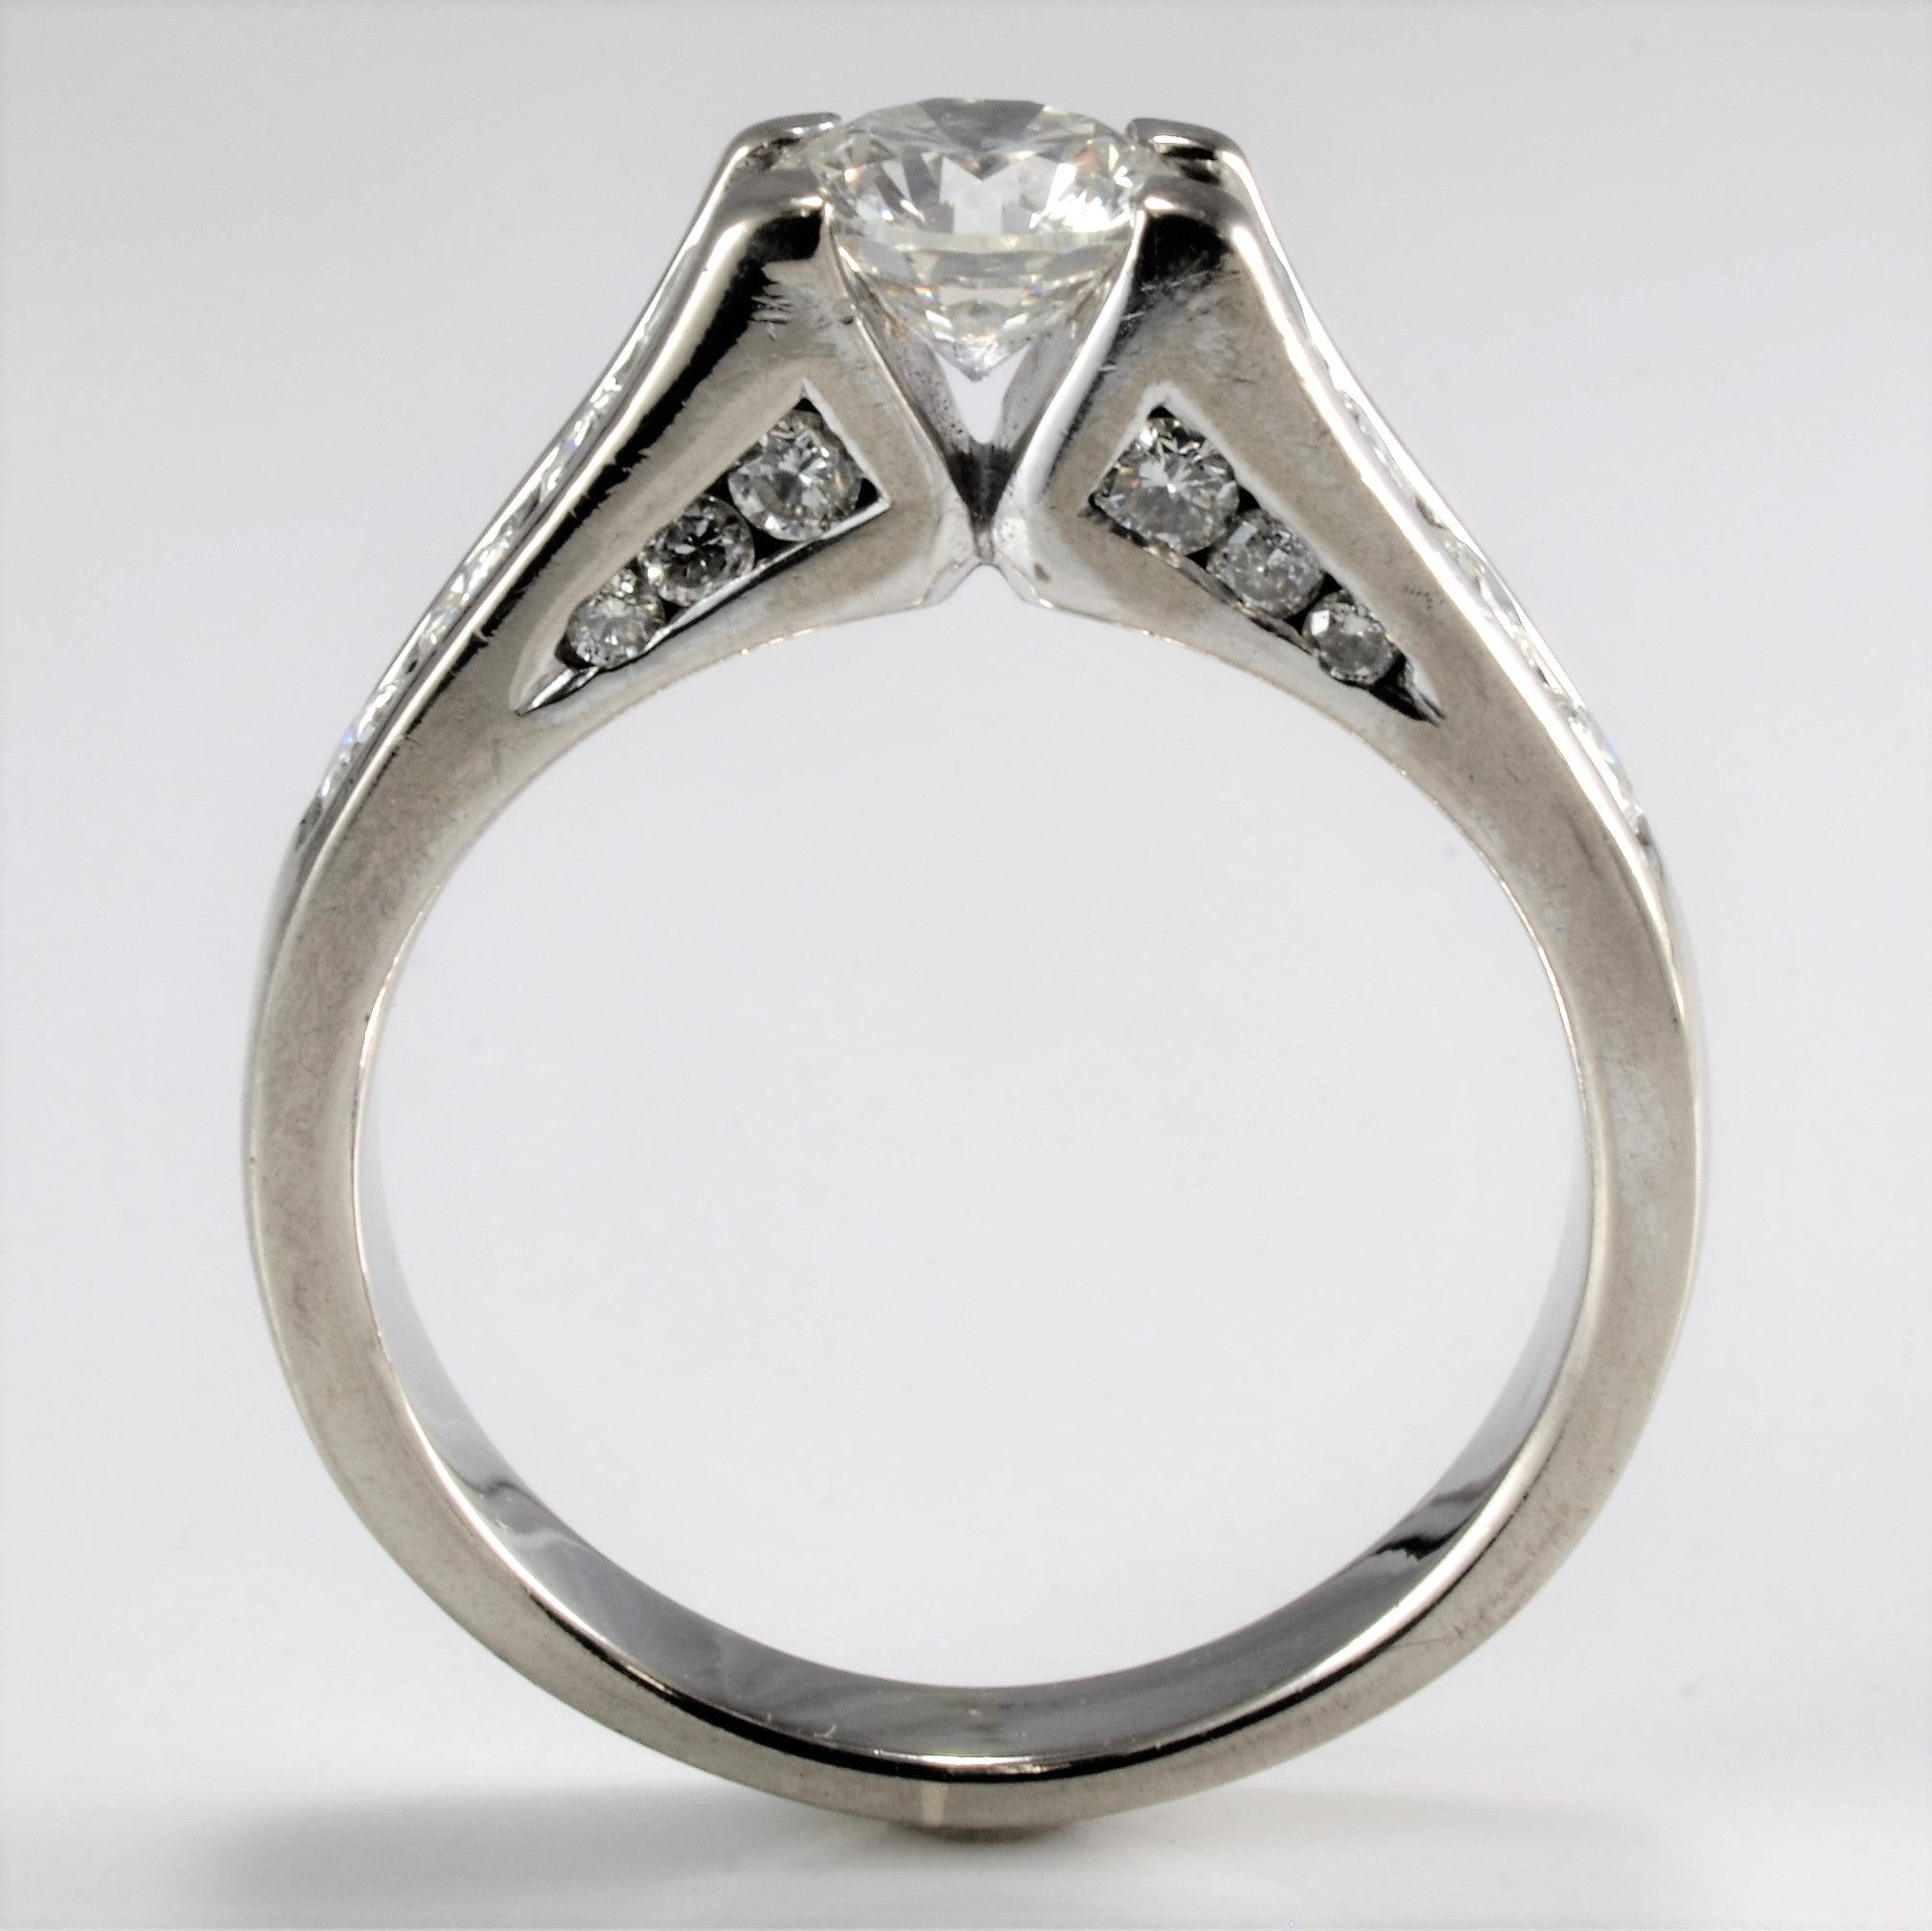 Channel Diamond Solid Engagement Ring | 1.32 ctw, SZ 5.5 |